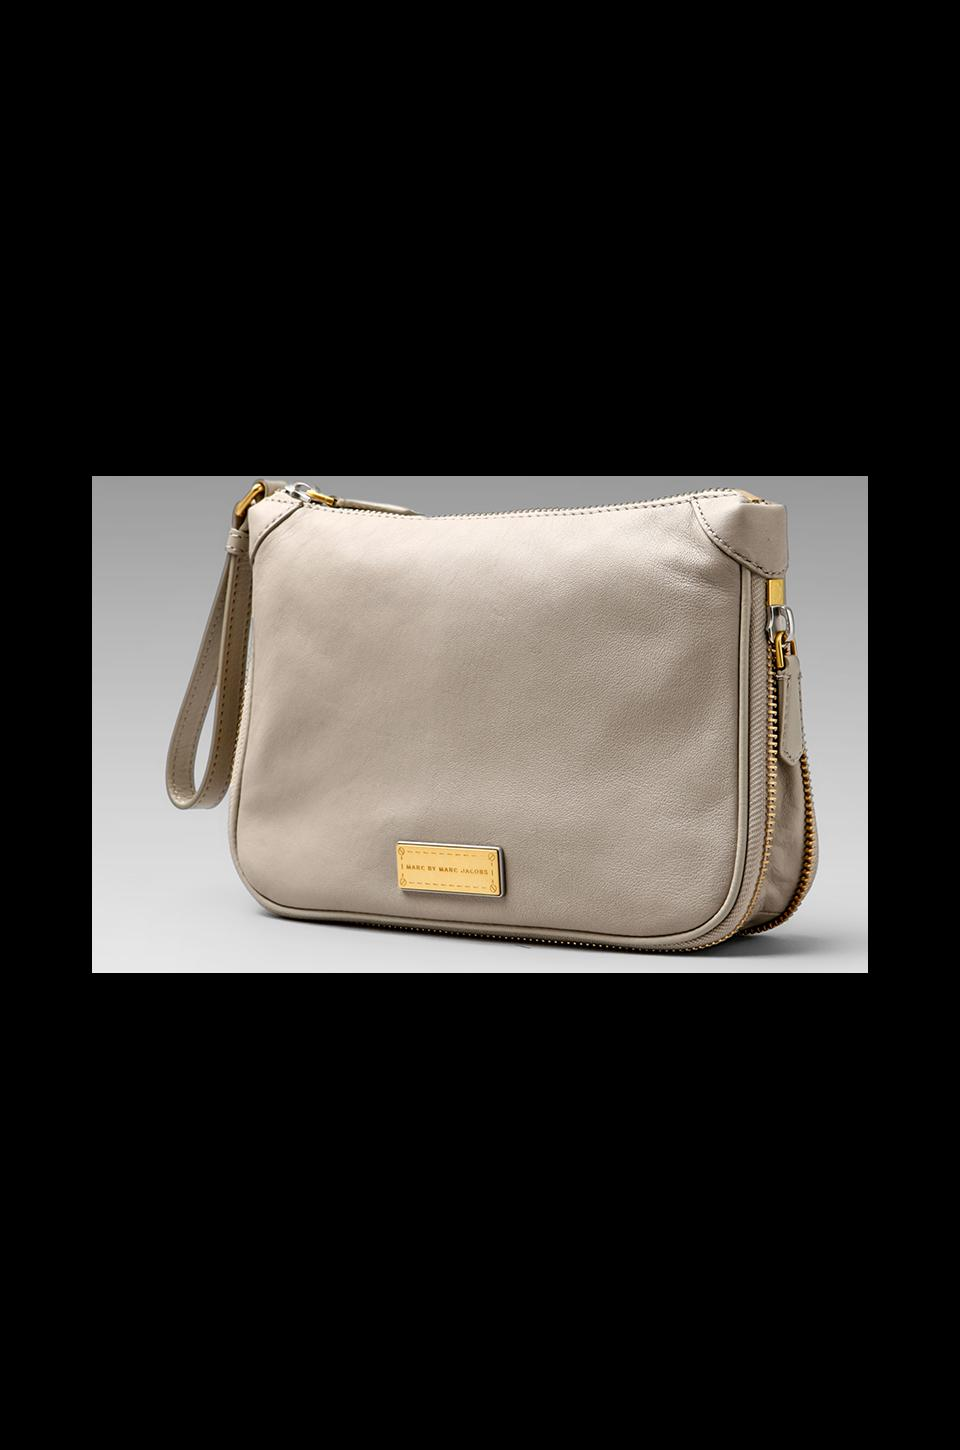 Marc by Marc Jacobs Washed Up Zip Clutch in Uniform Taupe